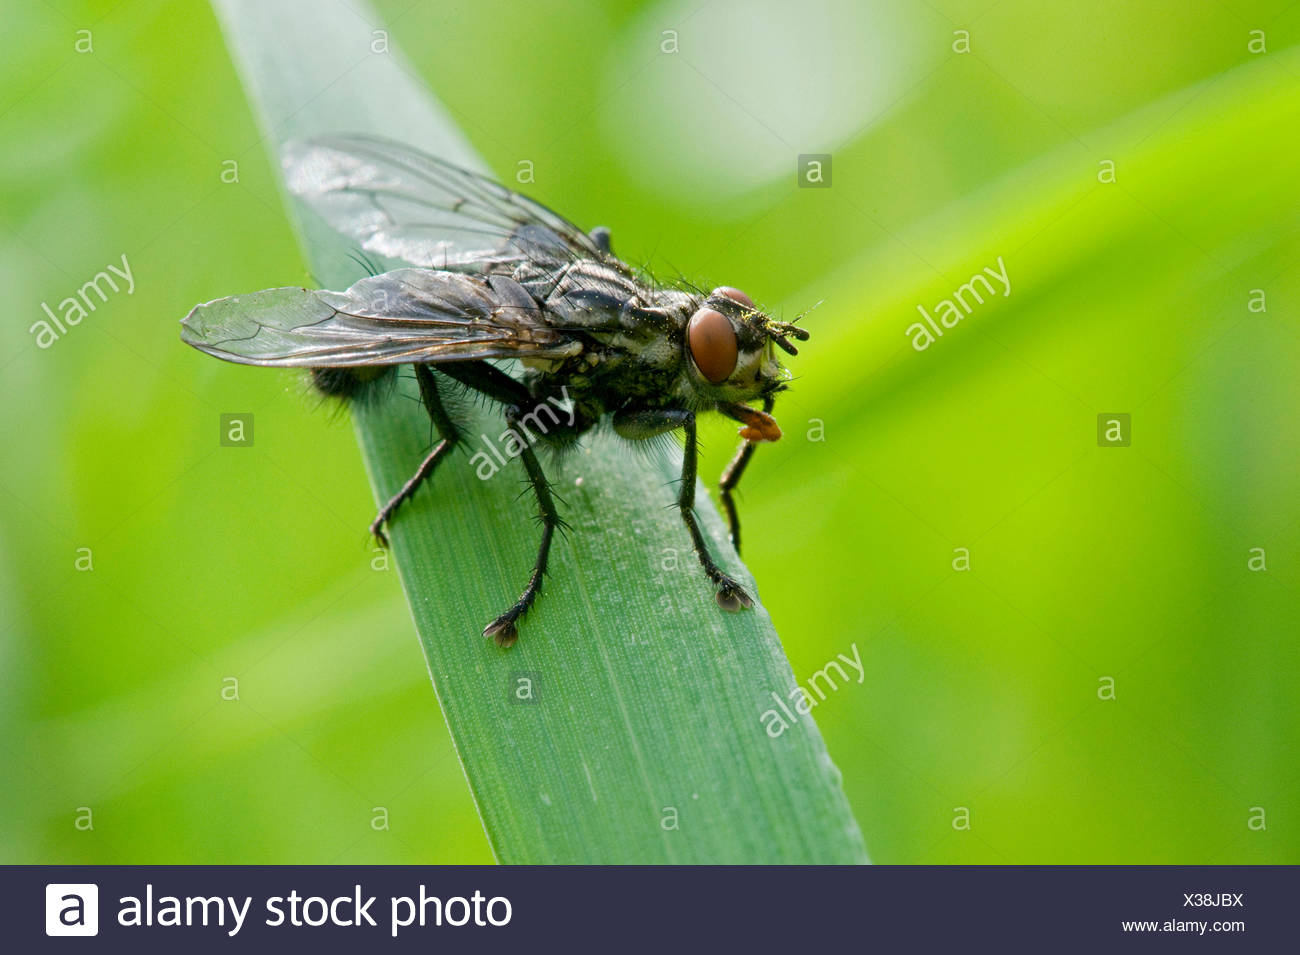 Flesh Fly (Sarcophaga spec.), sitting on a blade of grass - Stock Image